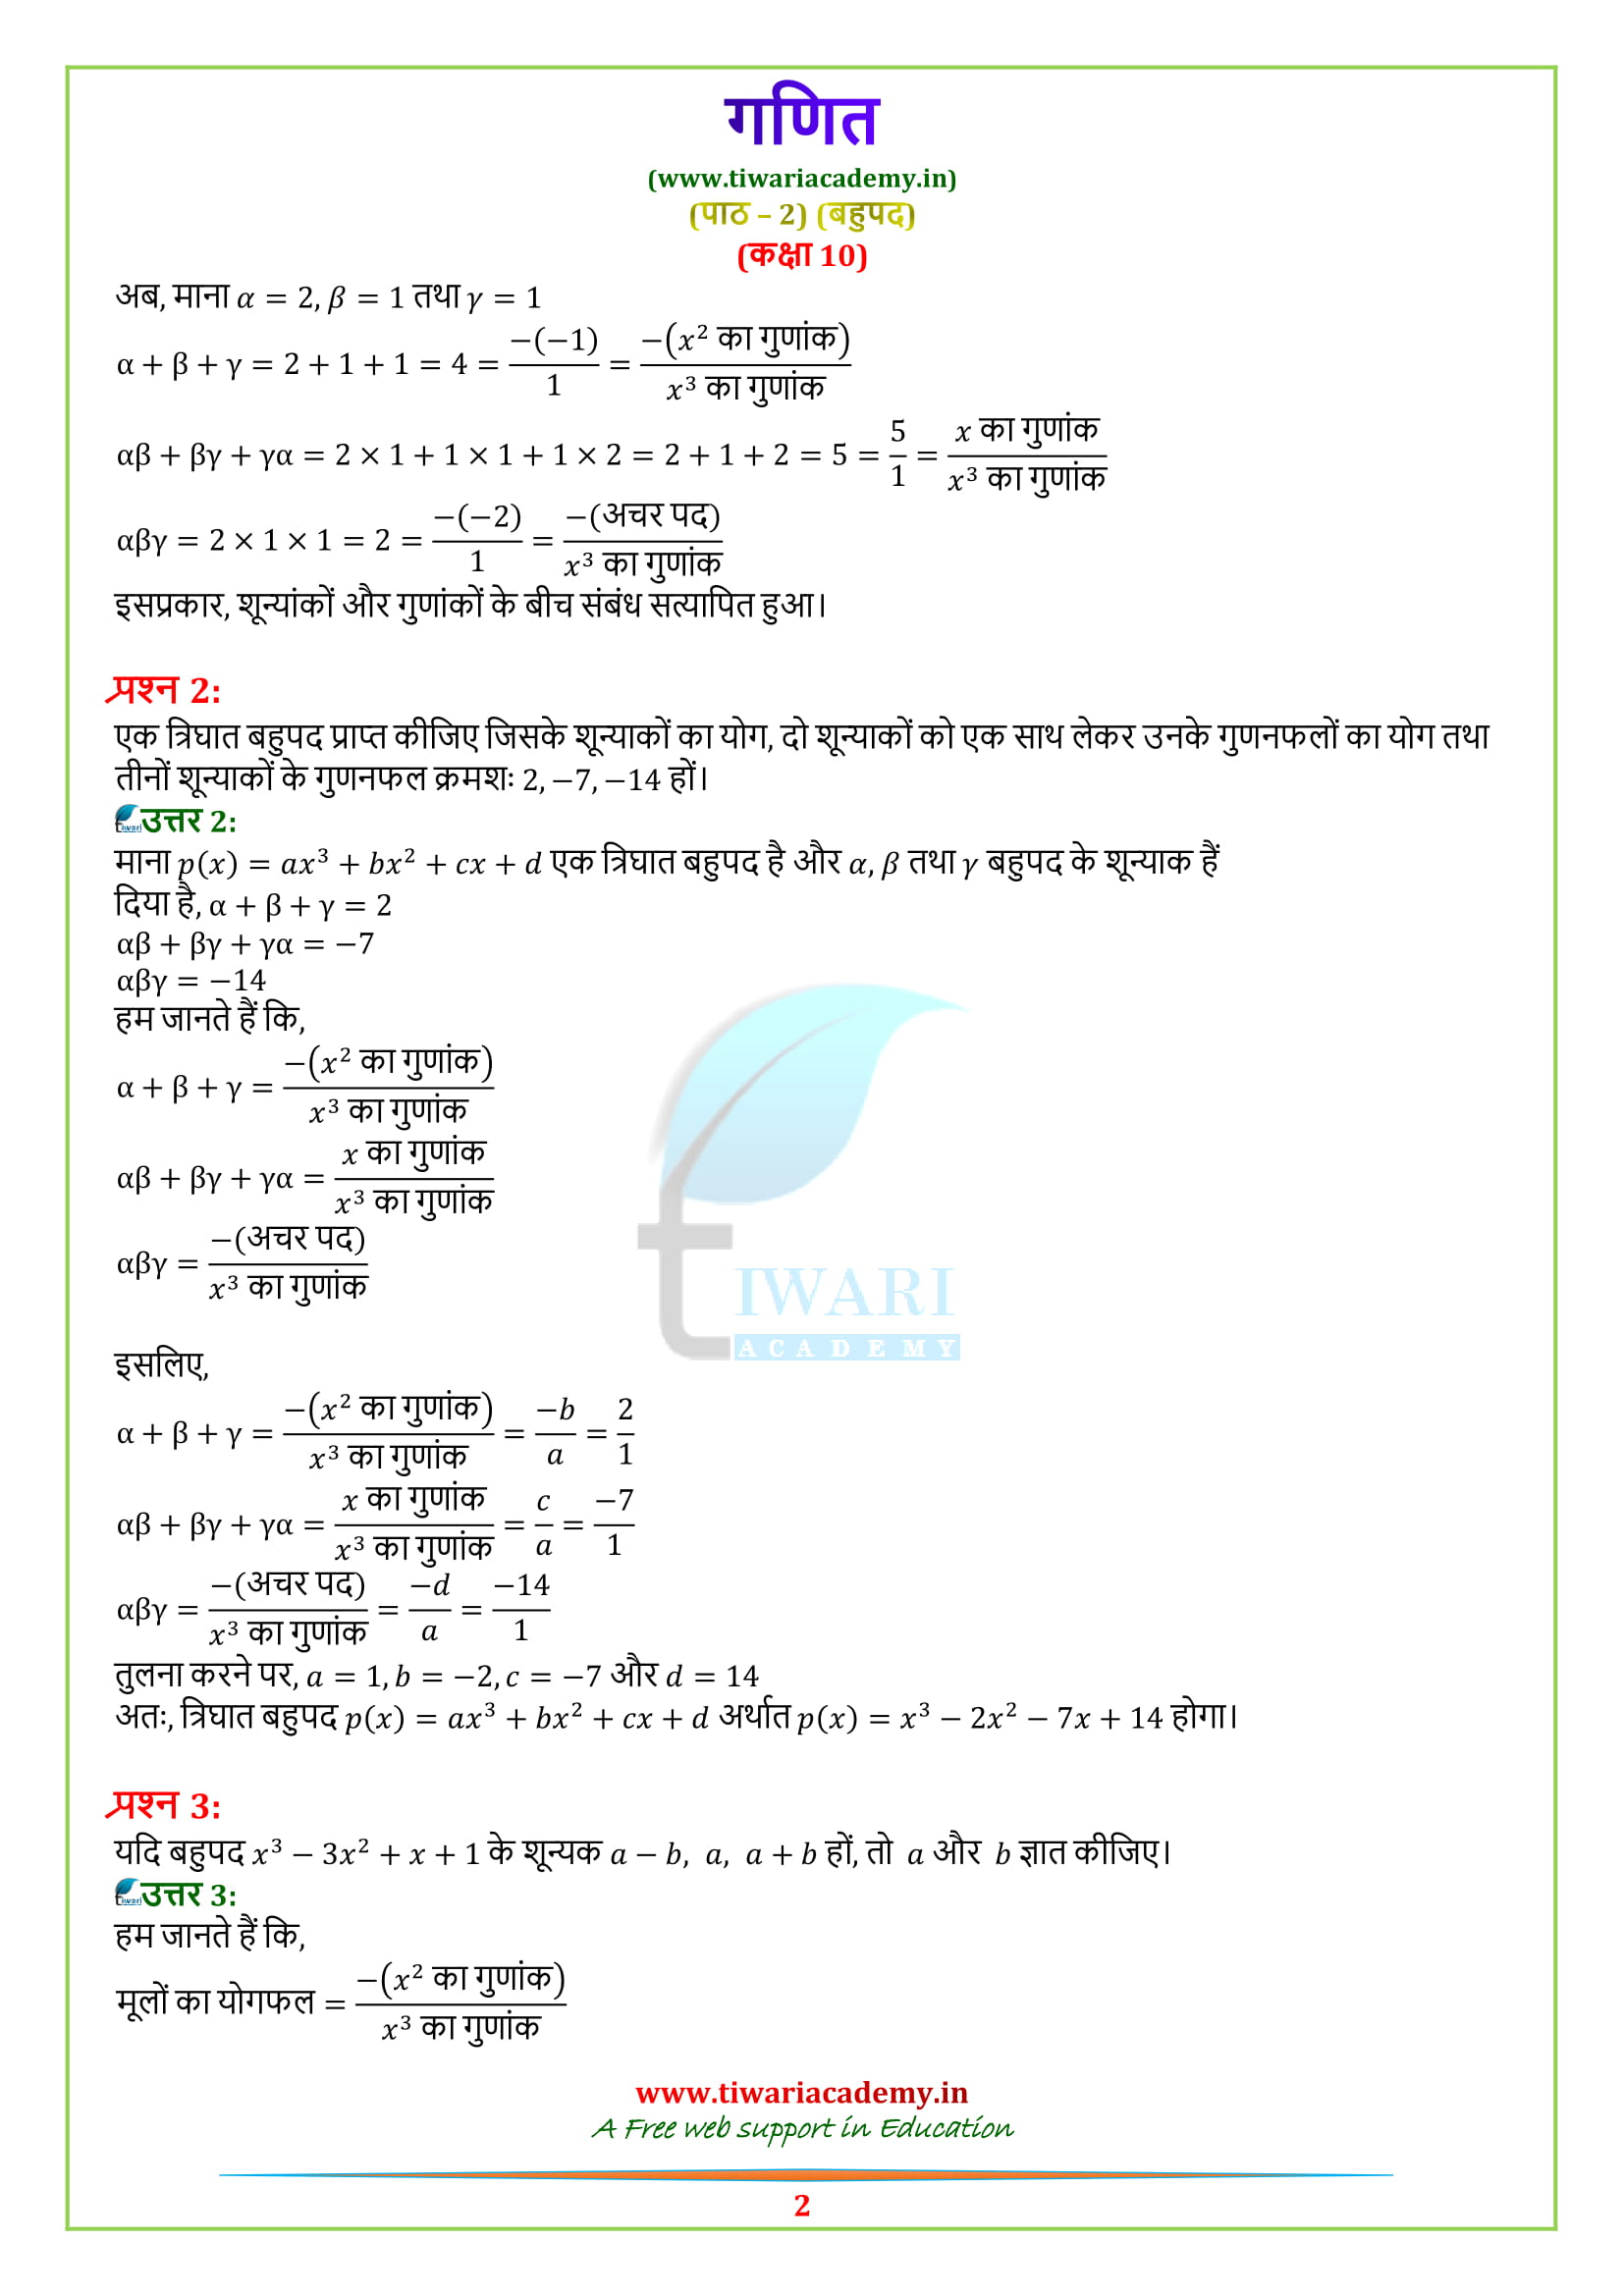 10 Maths Exercise 2.4 question 1, 2, 3, 4, 5, 6